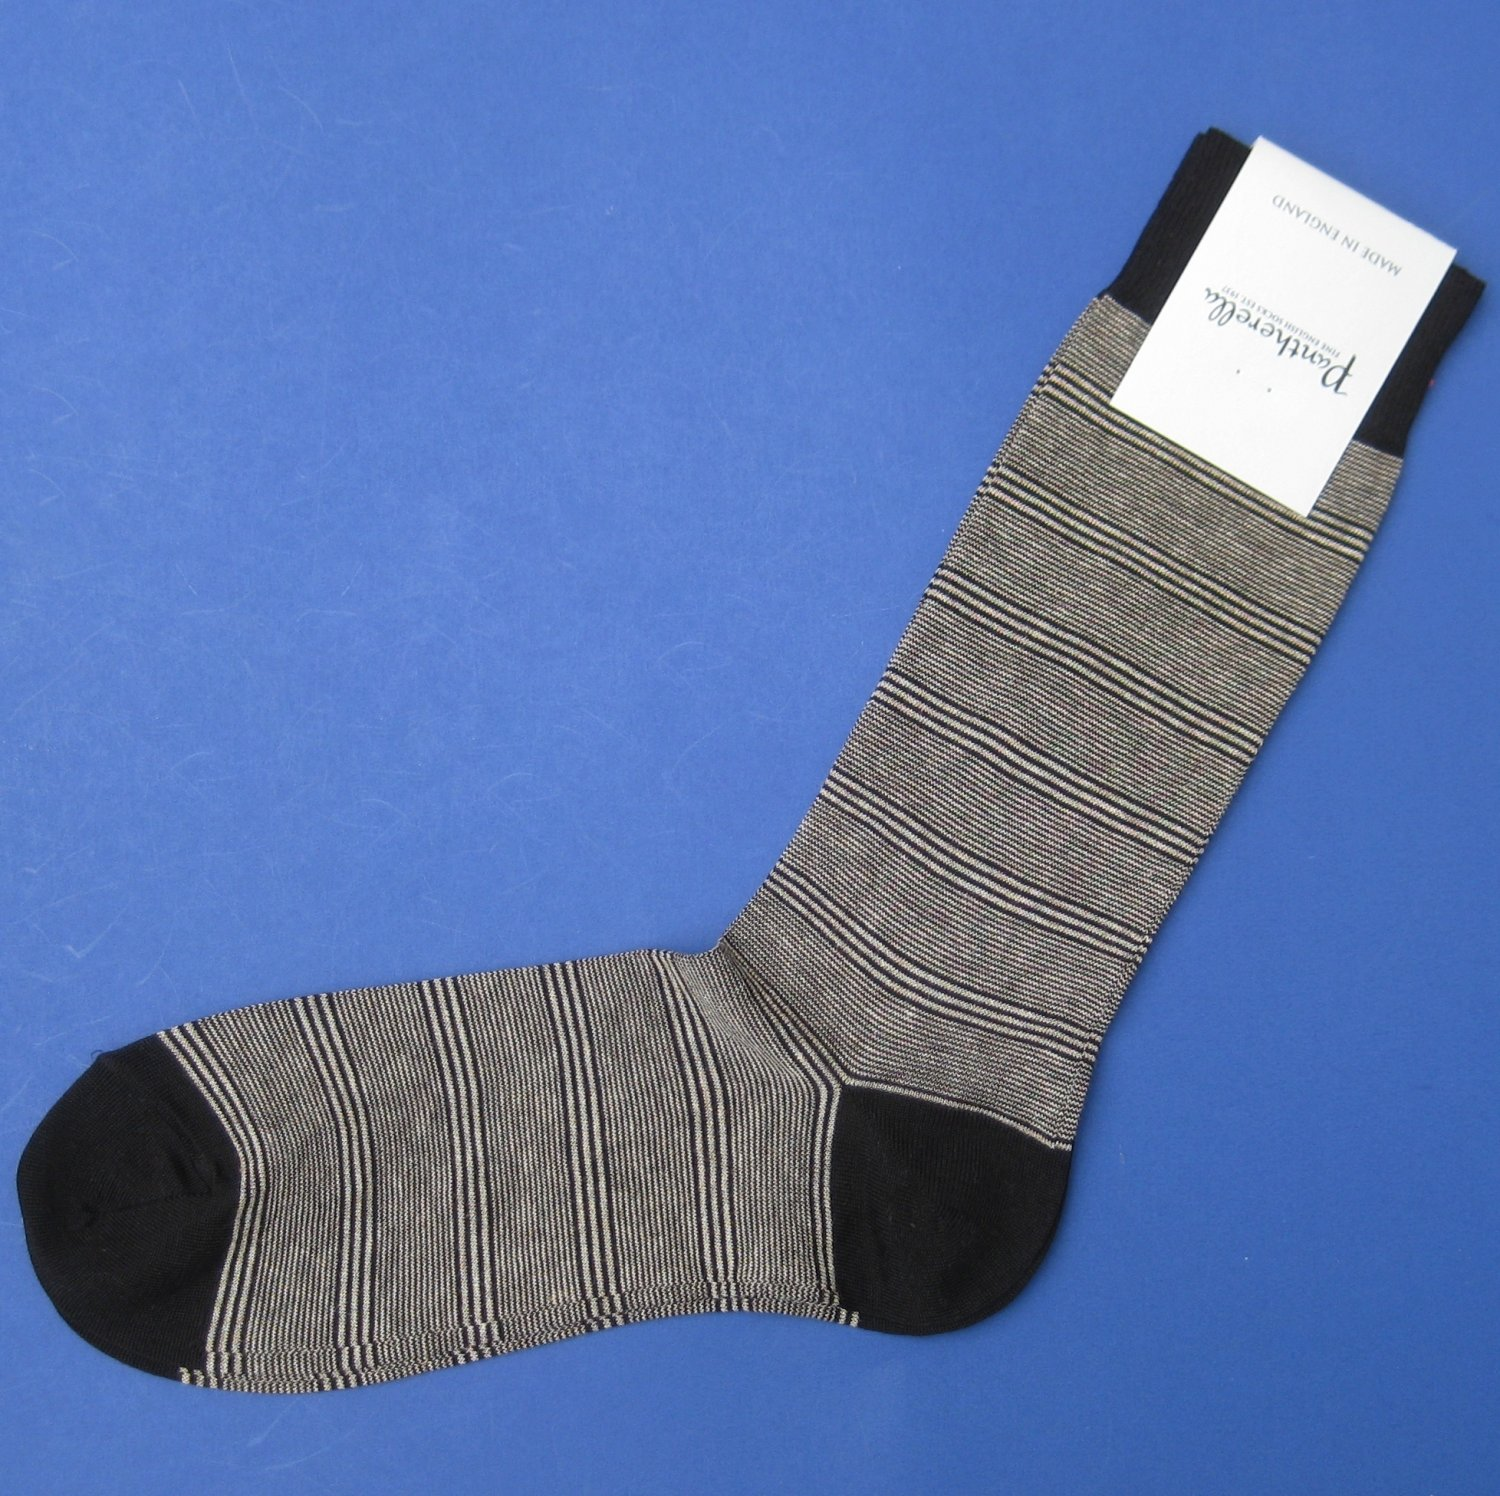 NWT Pantherella Black/Beige Stripe Cotton Blend Knit Dress Socks - M